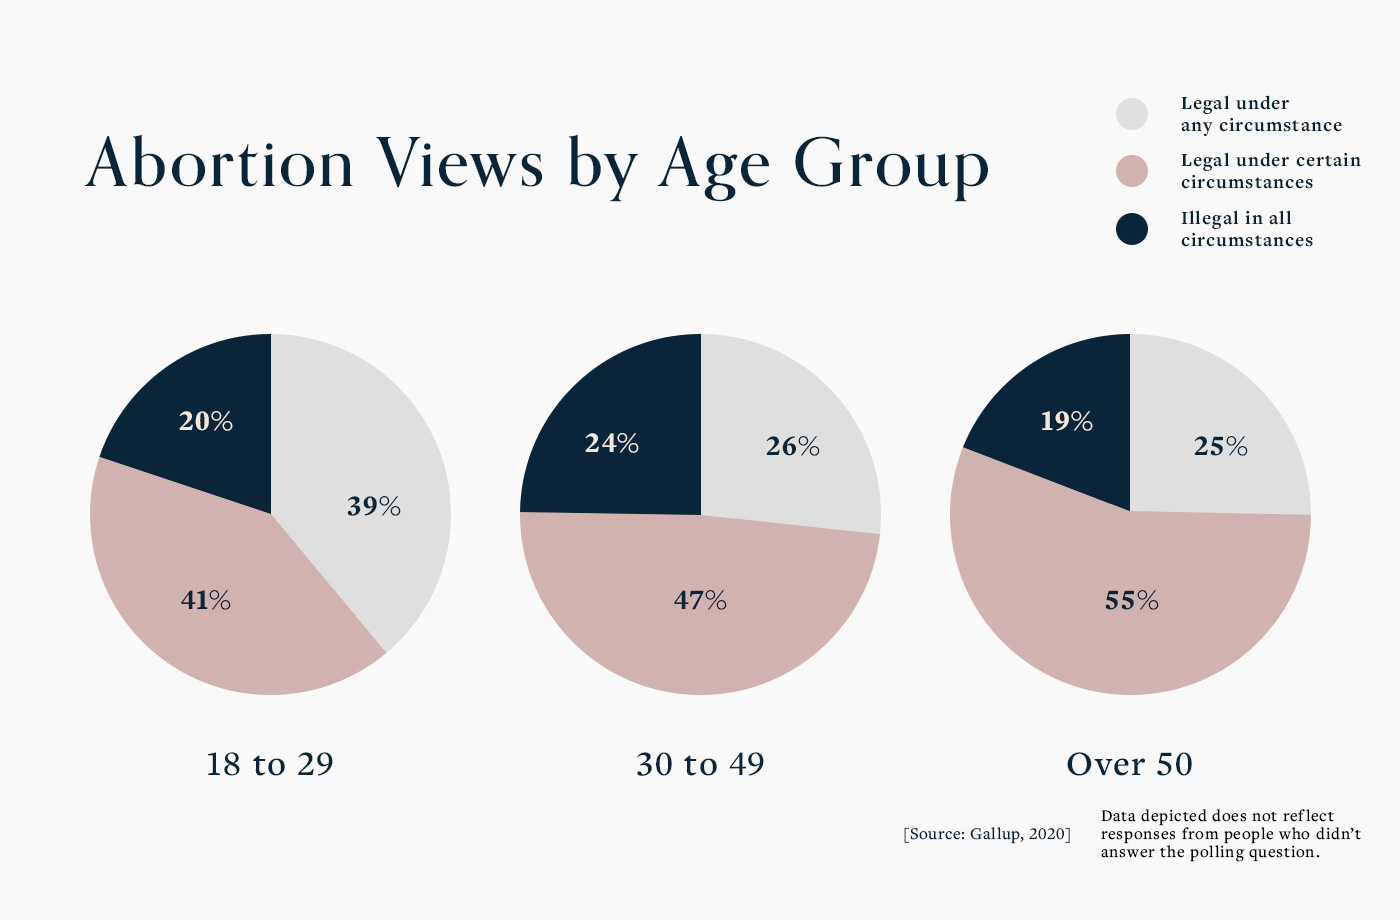 abortion views by age group